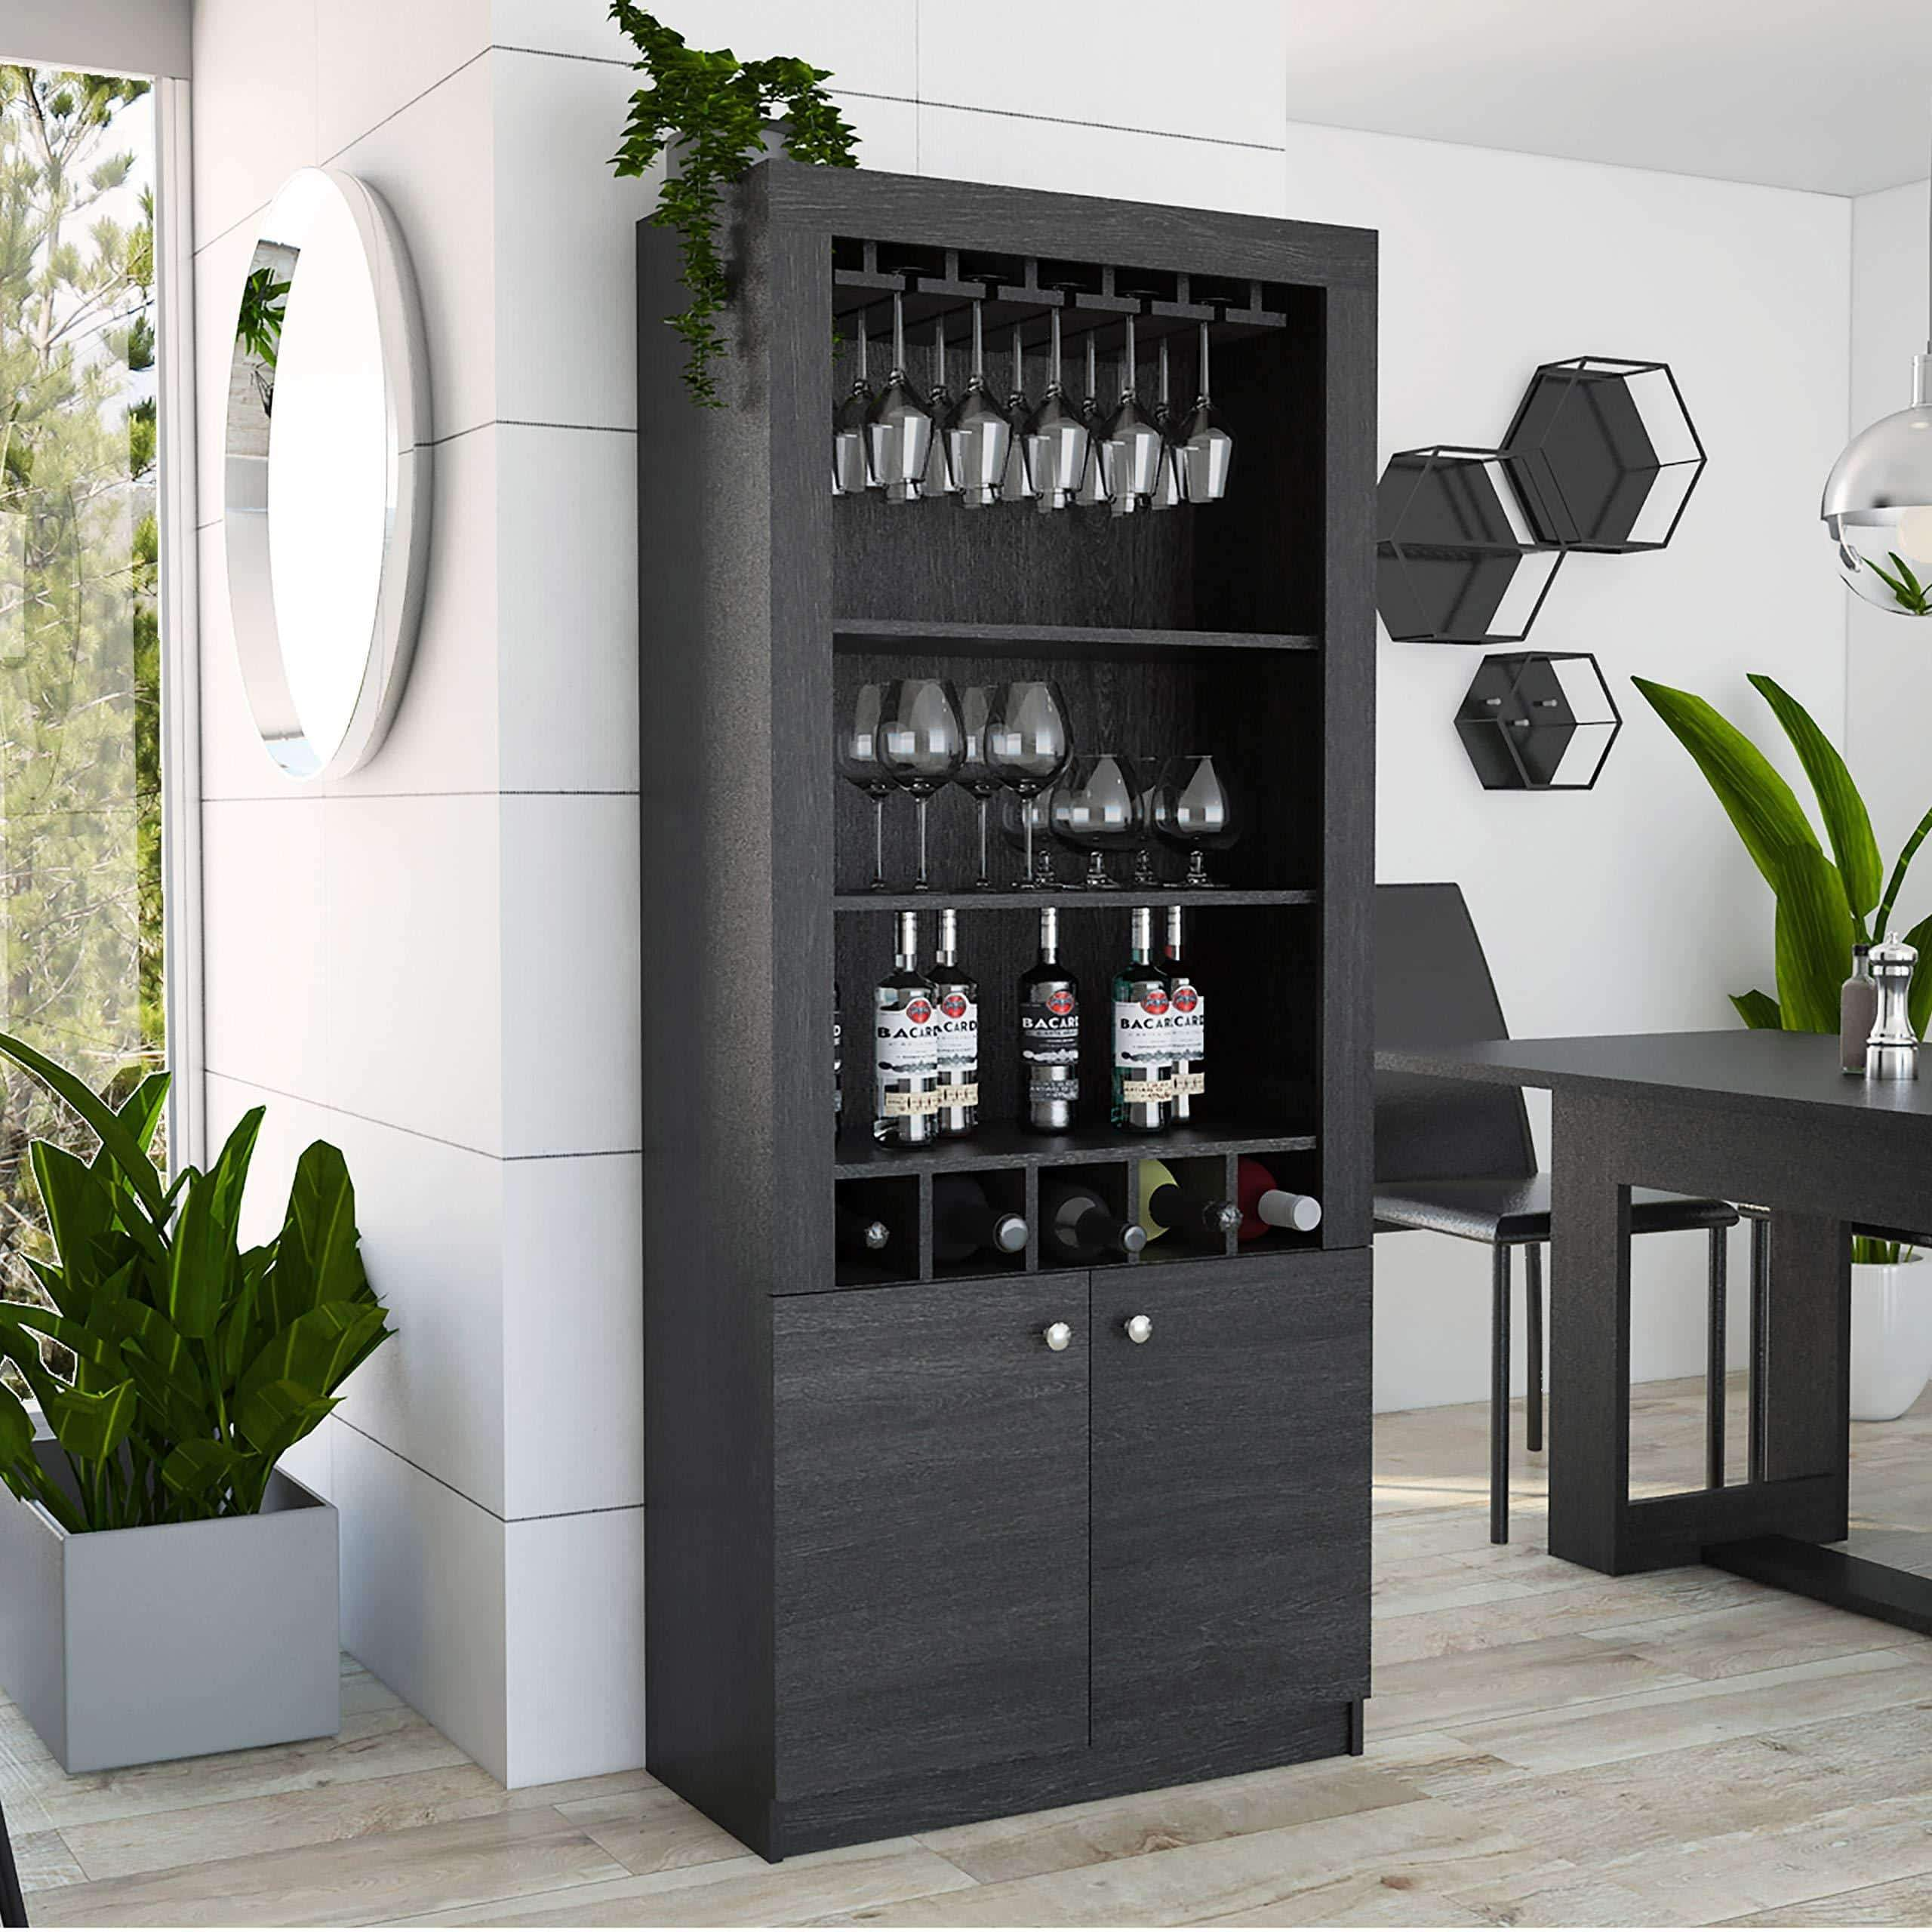 Amazon best tuhome montenegro collection bar cabinet home bar comes with a 5 bottle wine rack storage cabinets 3 shelves and a 15 wine glass rack with a modern dark weathered oak finish